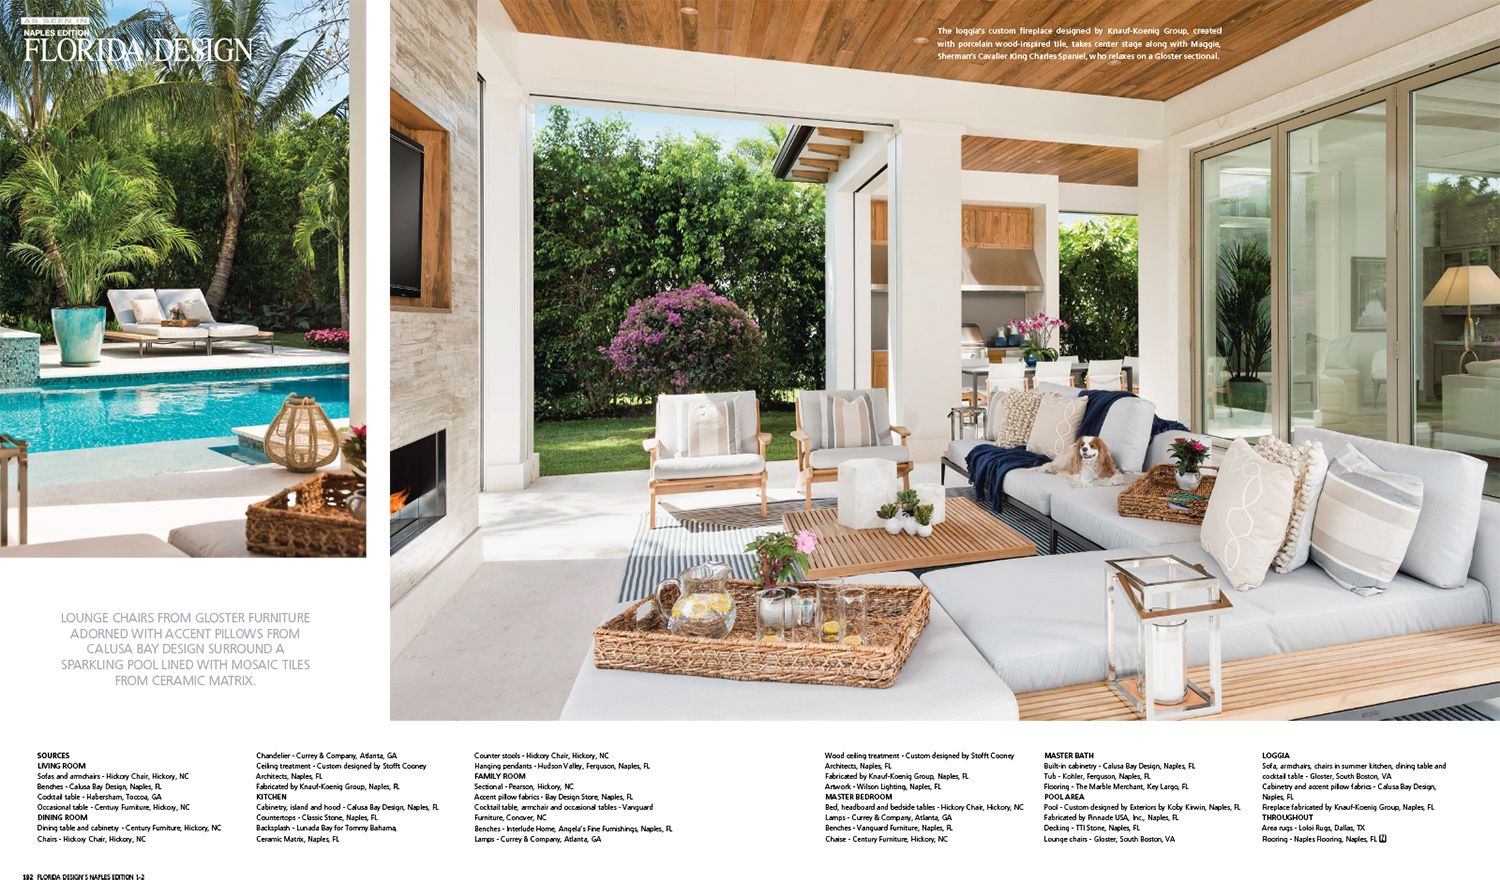 Florida Design Magazine - MHK ARCHITECTURE & PLANNING